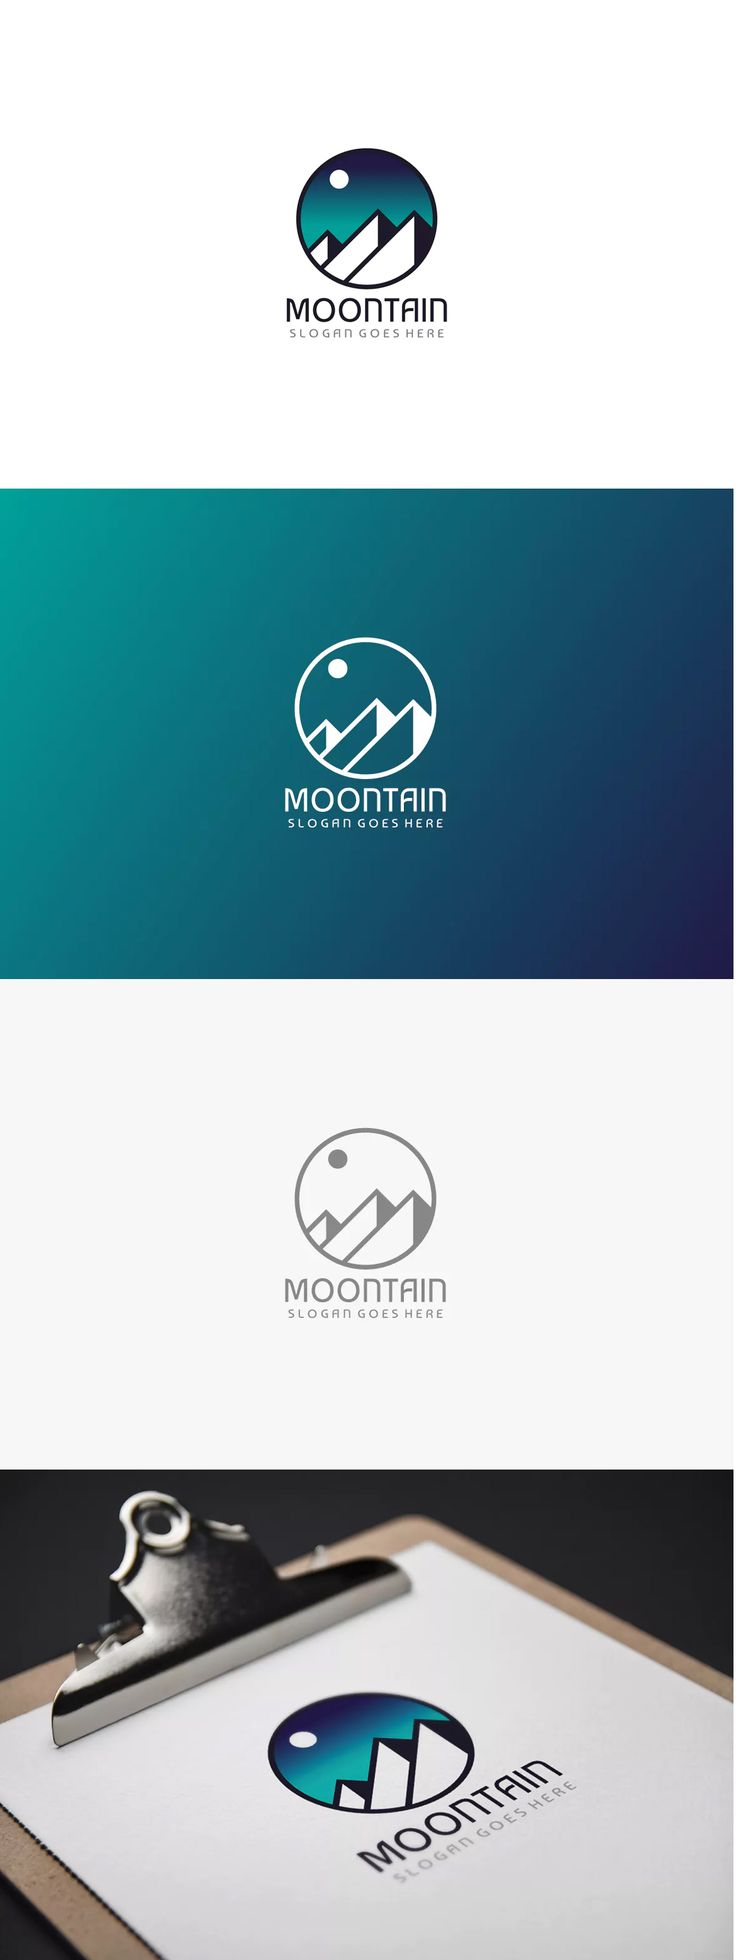 Mountain Logo Template AI, EPS